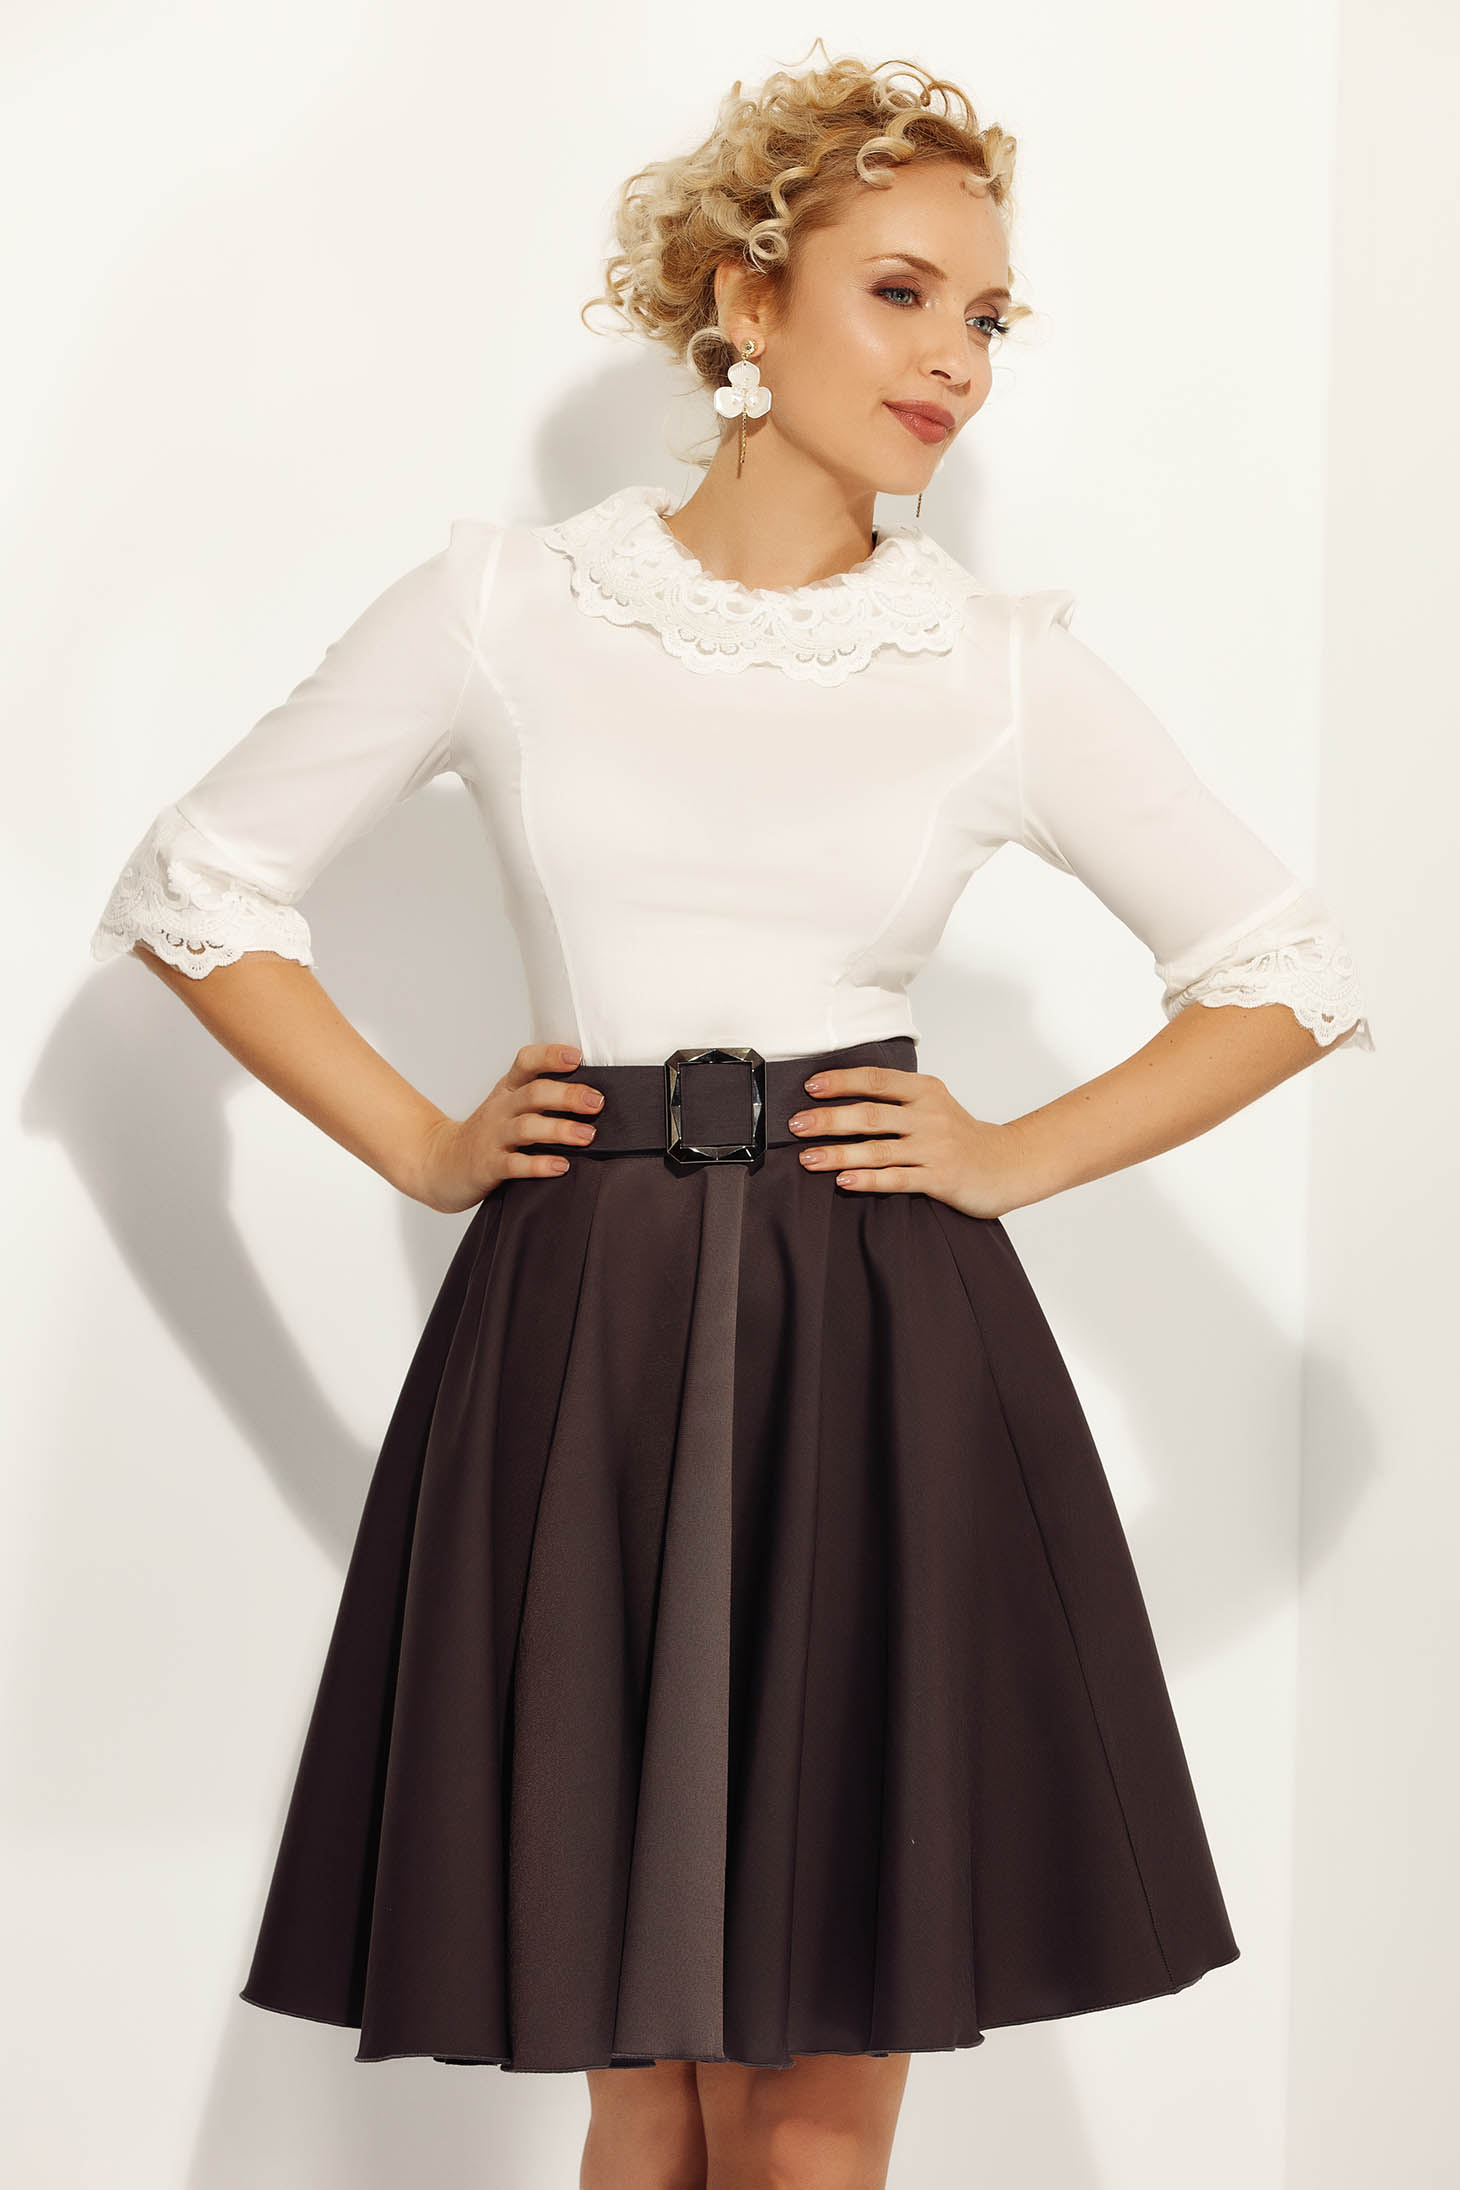 Fofy white women`s shirt elegant with tented cut slightly elastic cotton with lace details